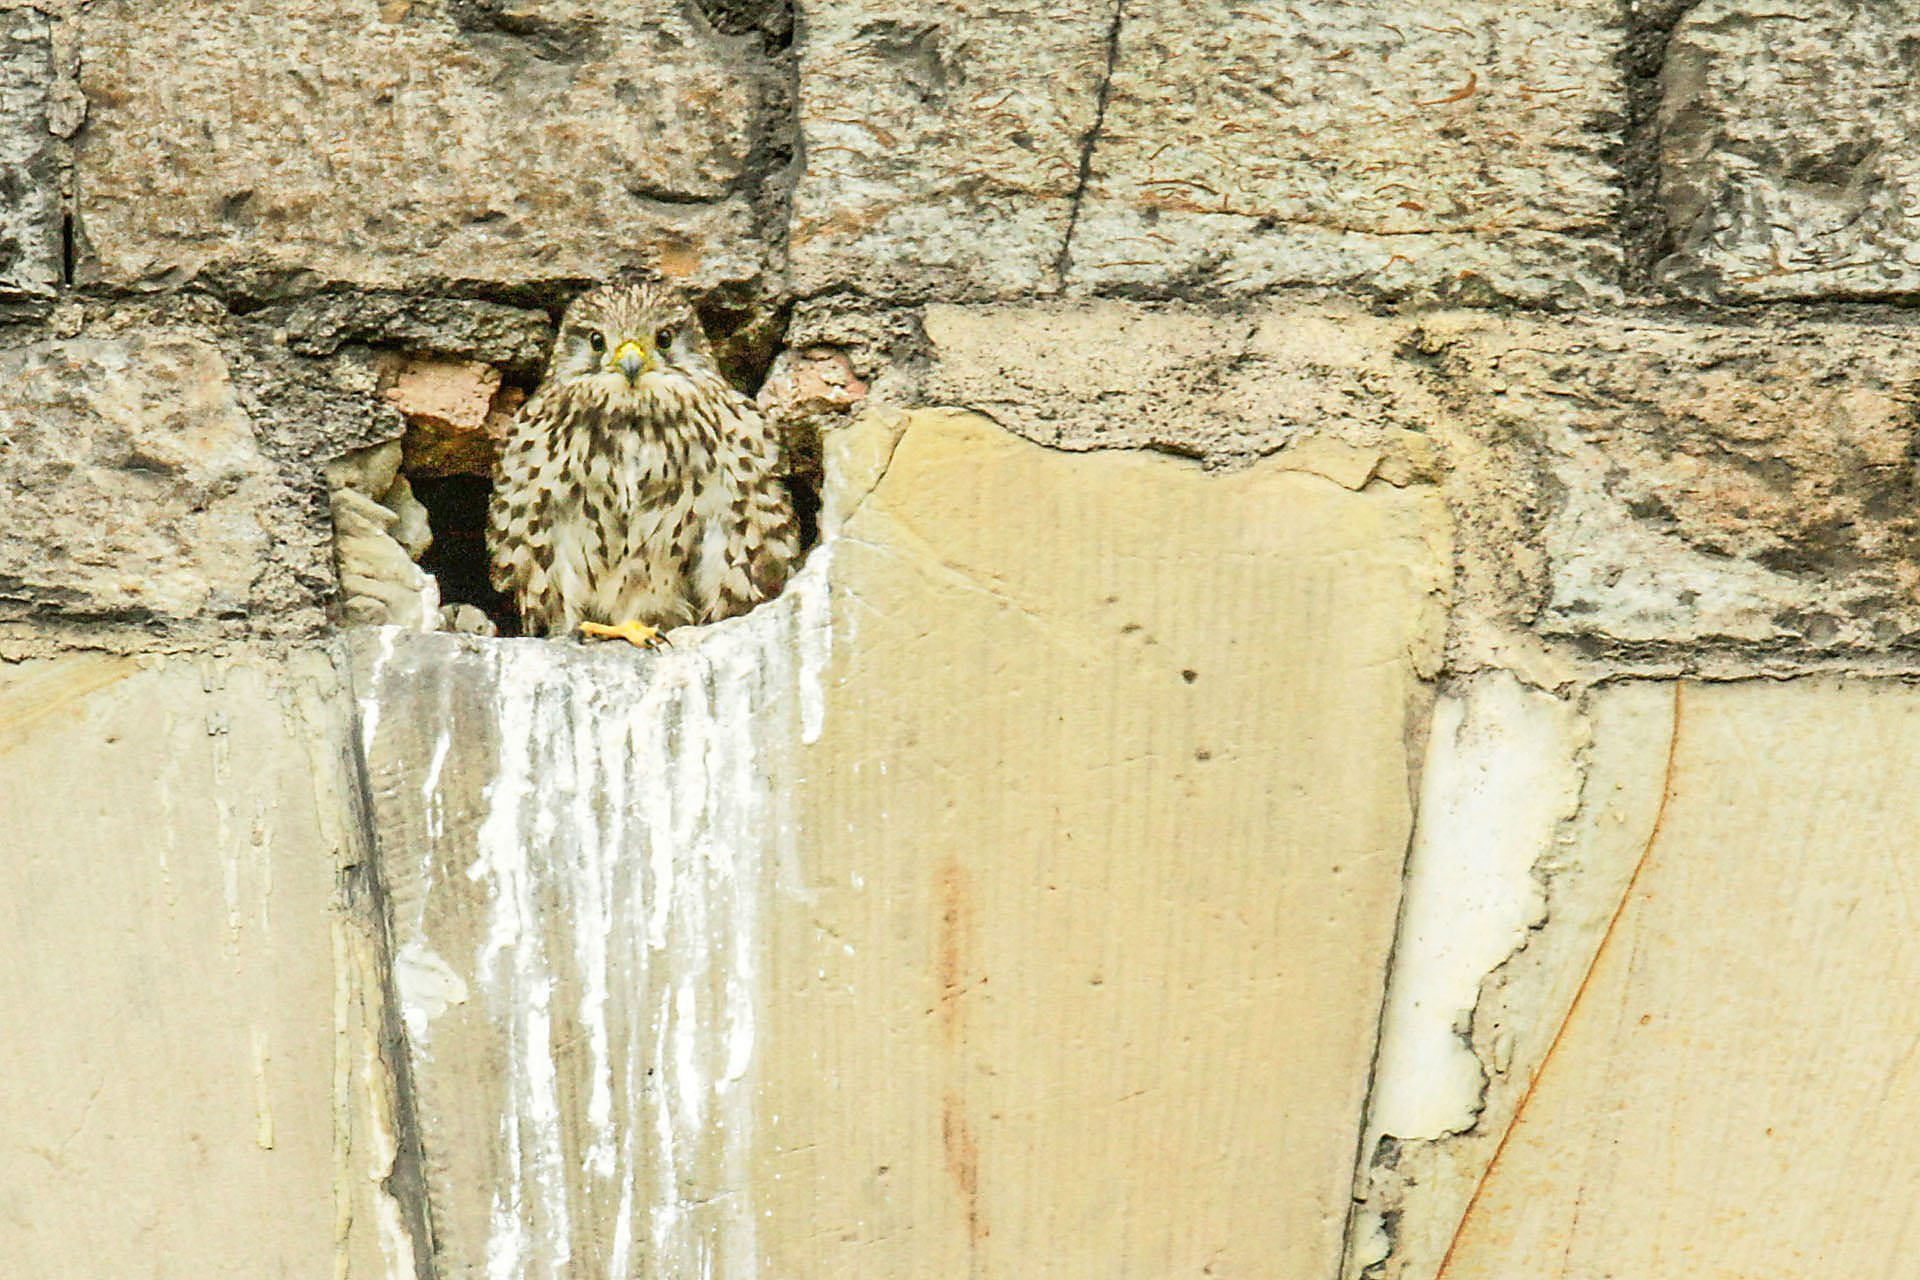 Young kestrel overlooking the city from his nesting cave in a historic building. Photo (copyright) Monika Lawrence